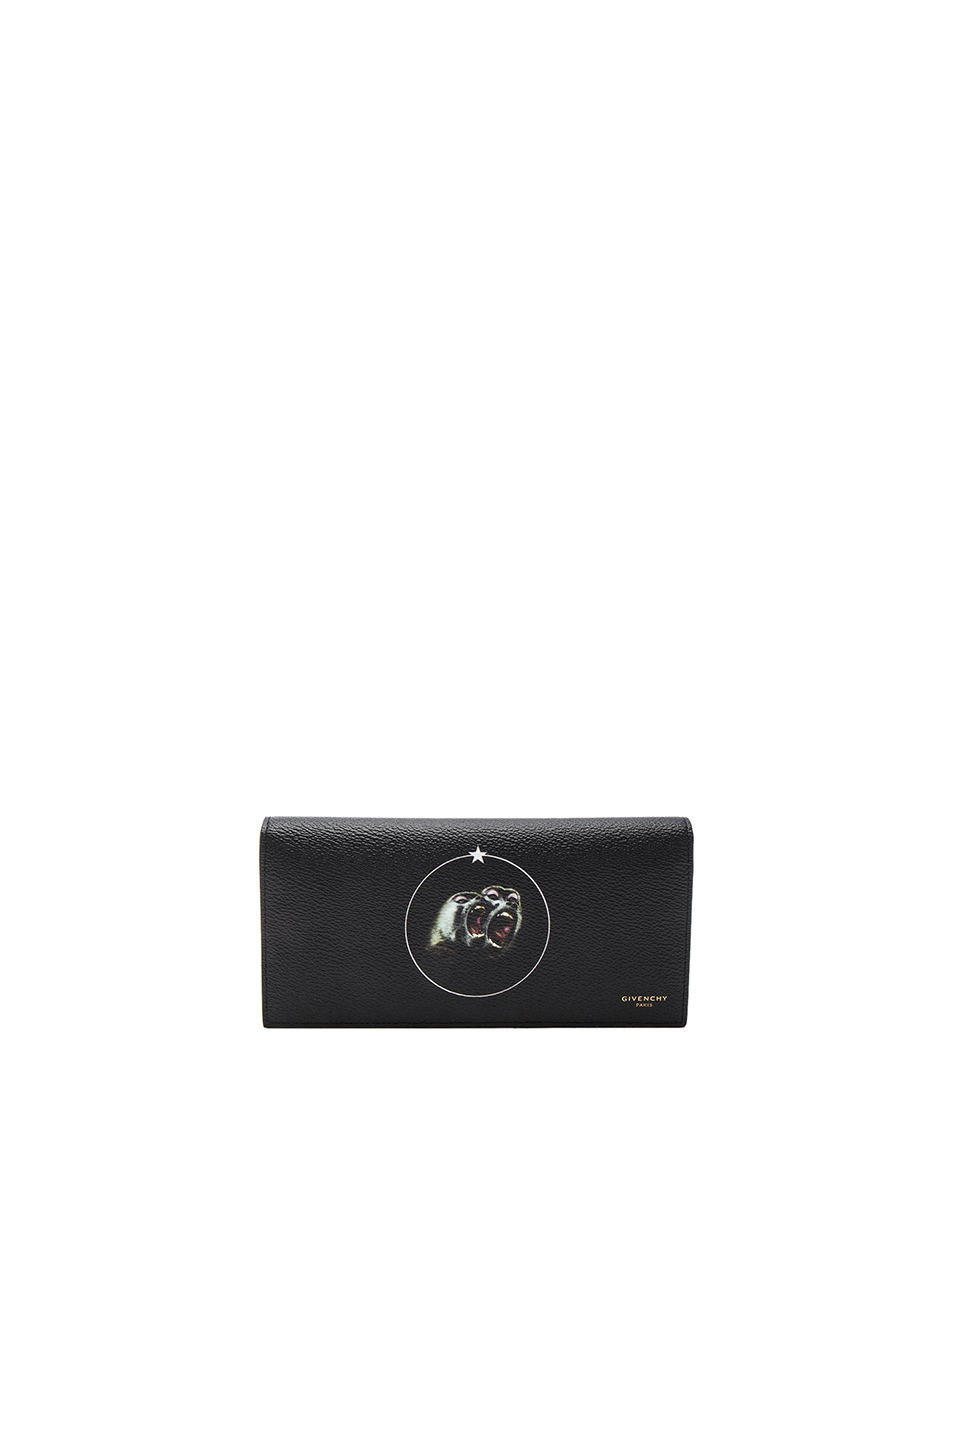 GIVENCHY Flap Wallet in Black